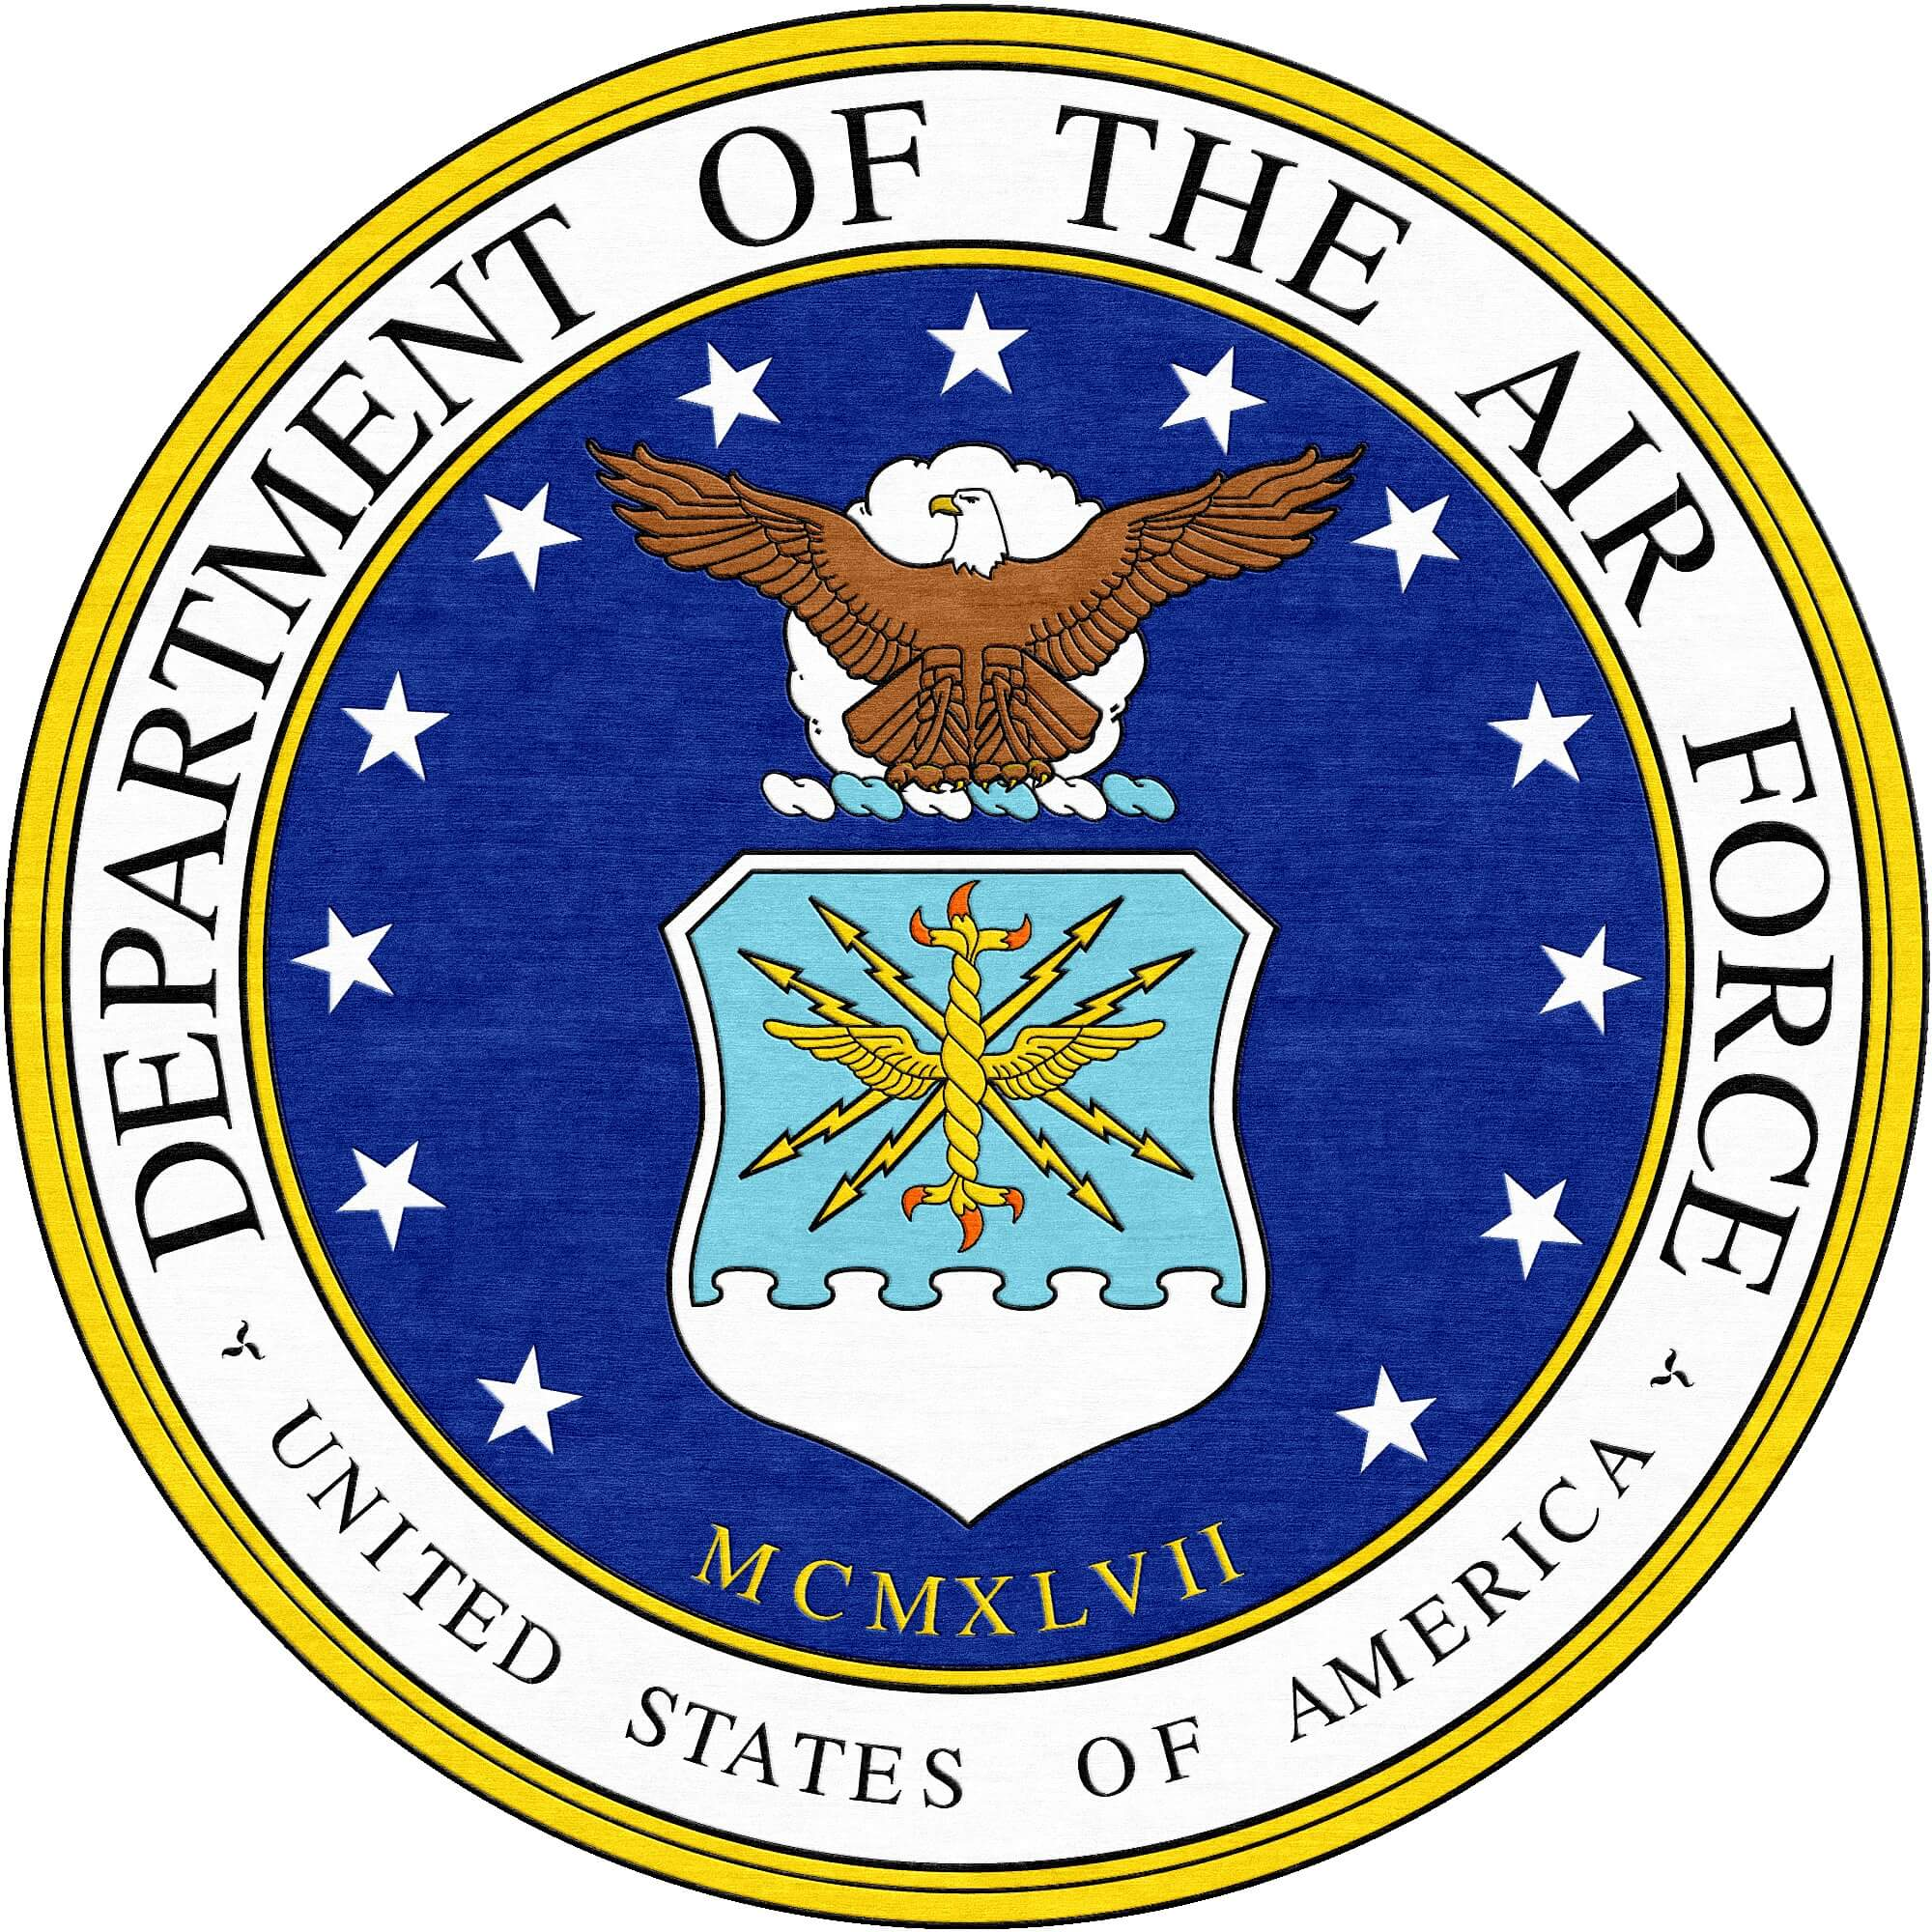 United States Air Force Logos